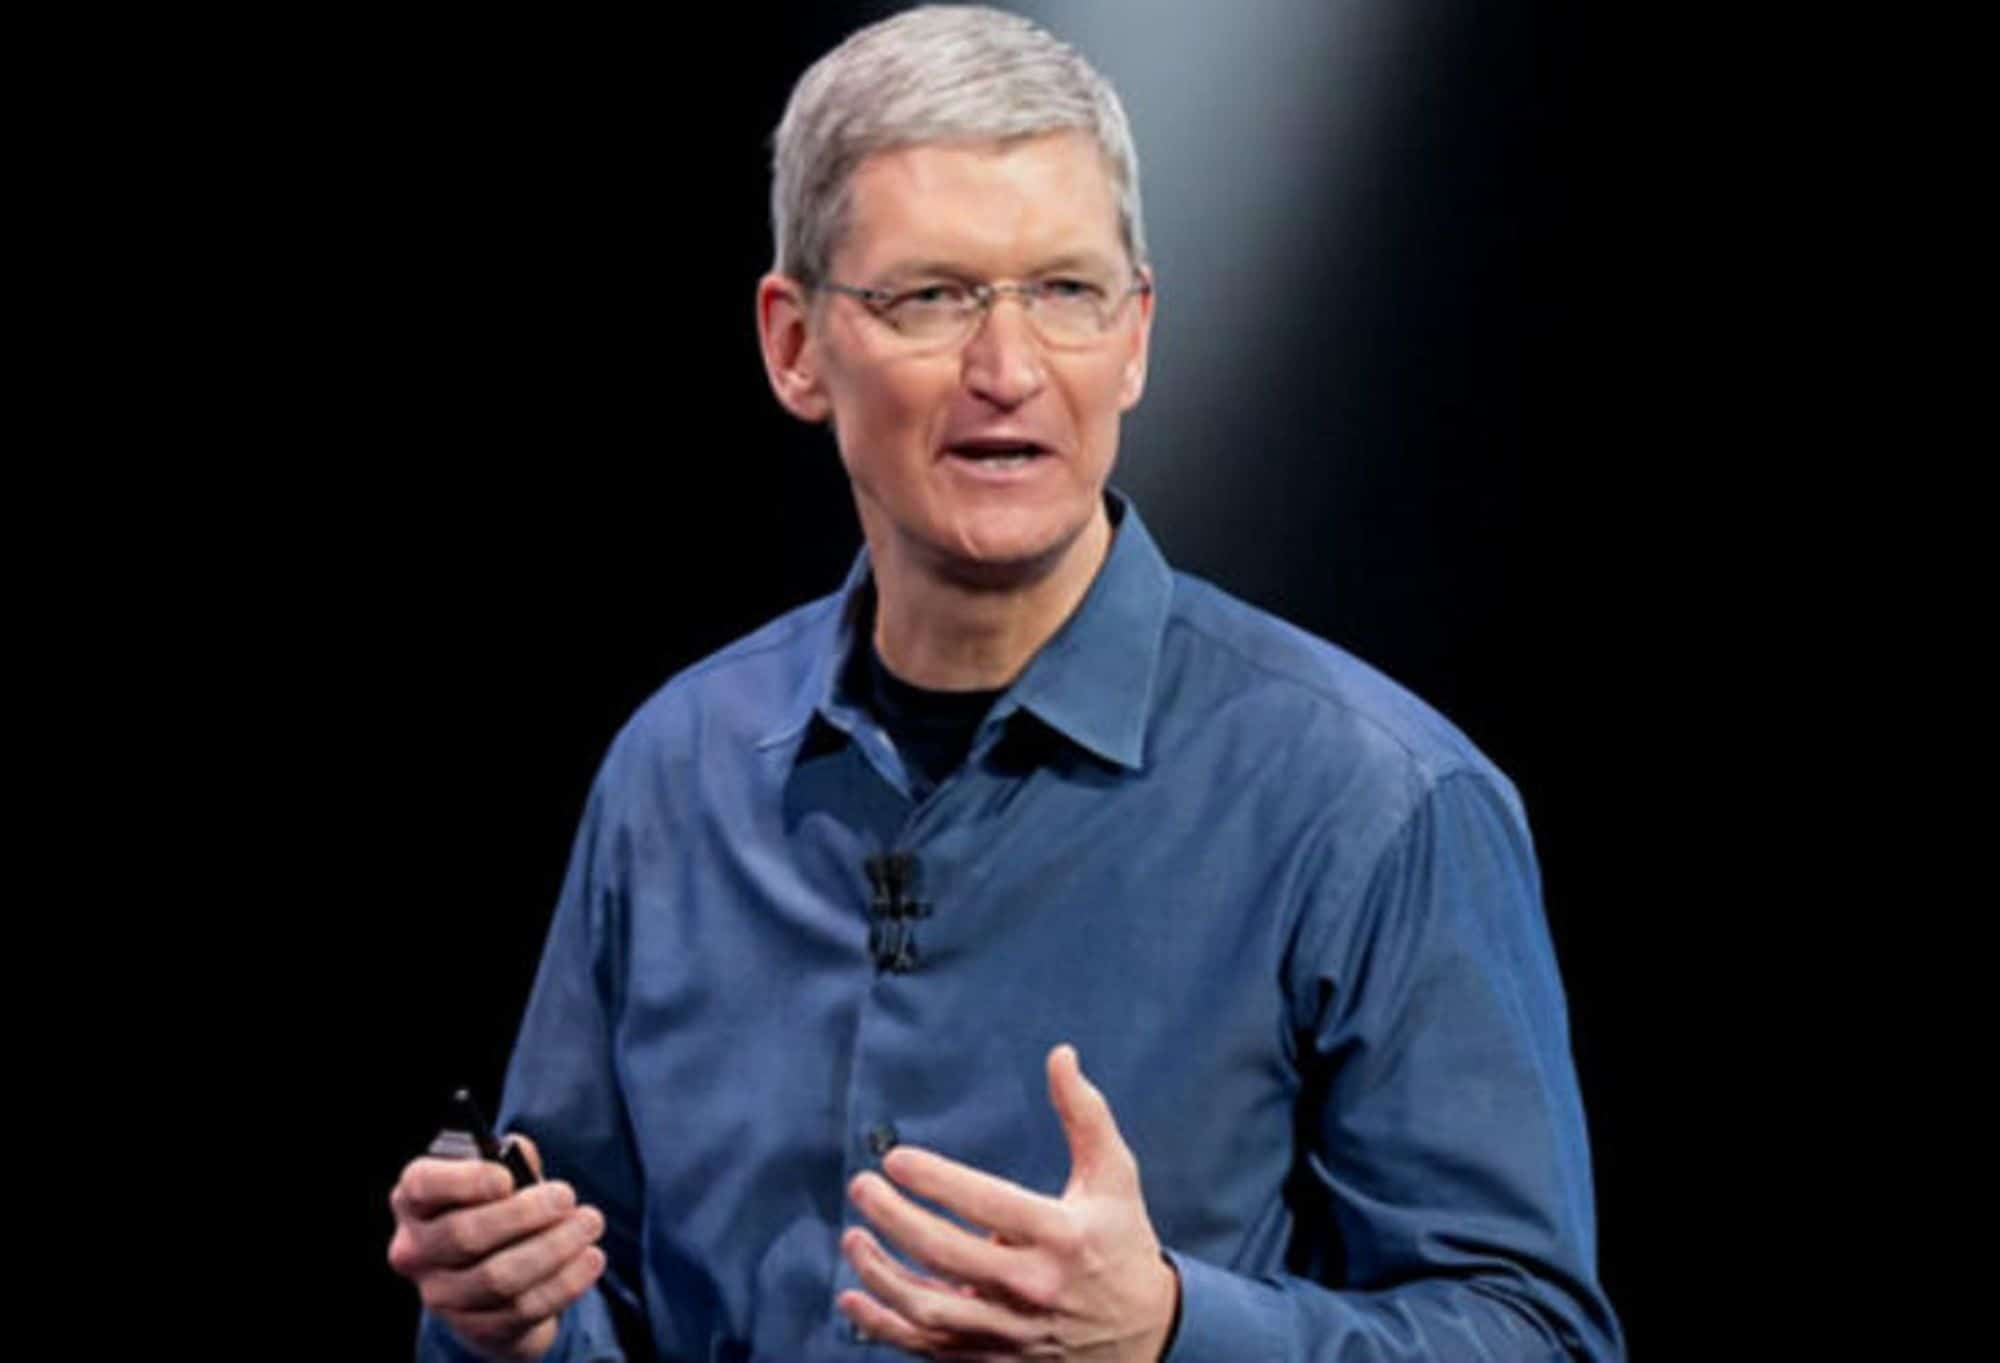 Tim Cook; Profile In Personal Style; Profile In Style